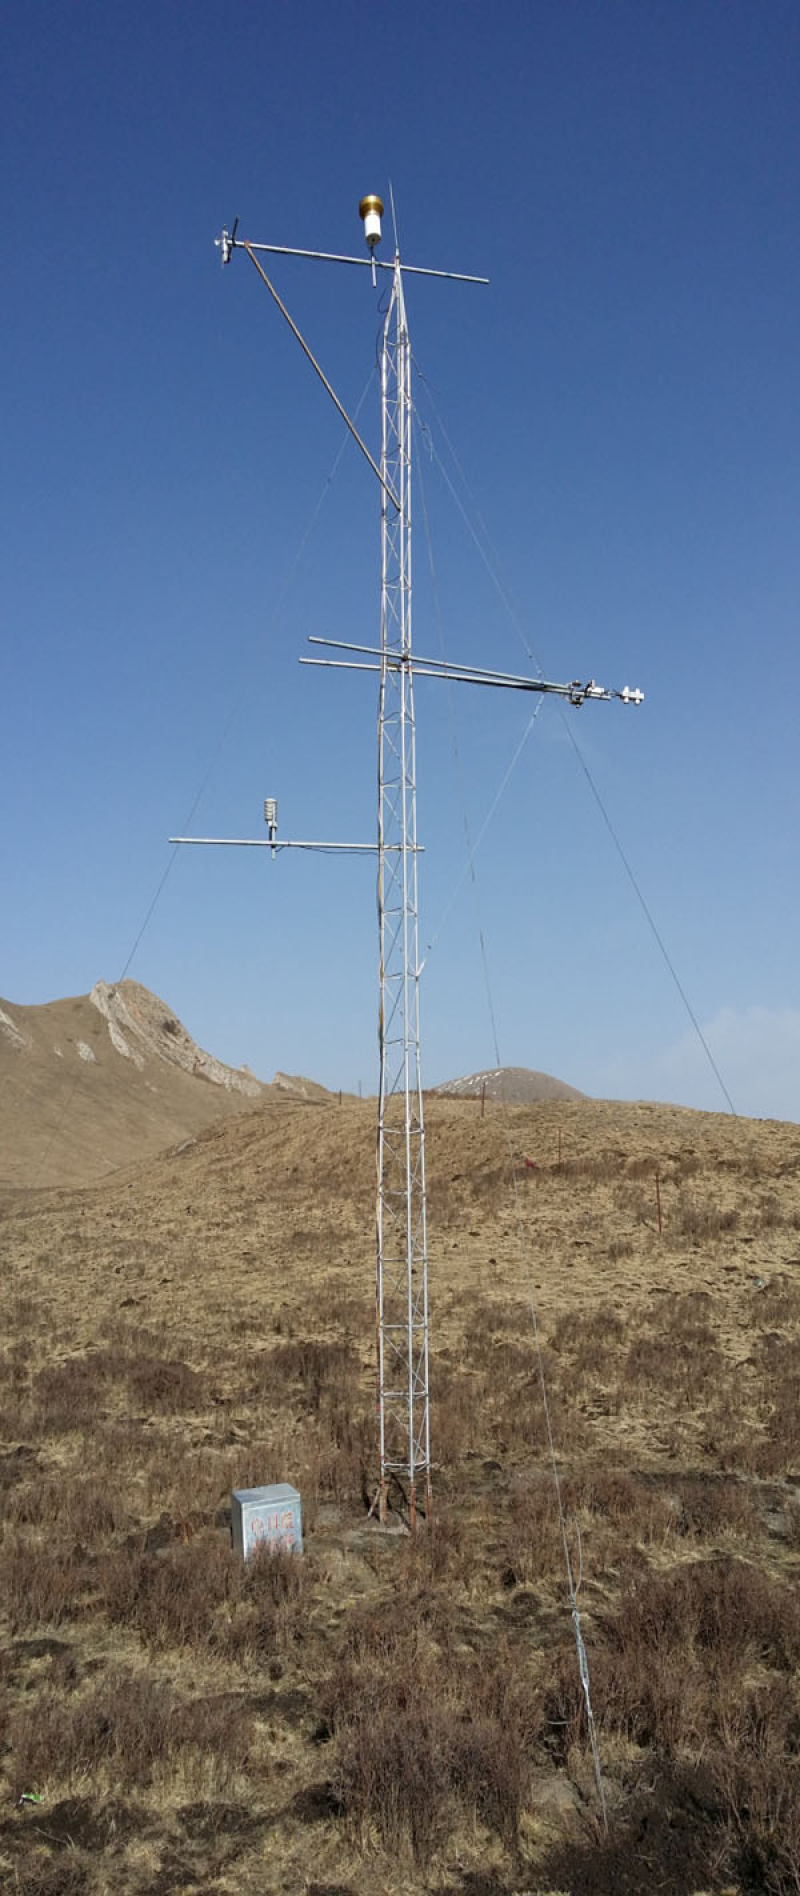 HiWATER: Dataset of hydrometeorological observation network (automatic weather station of A'rou sunny slope station, 2015)